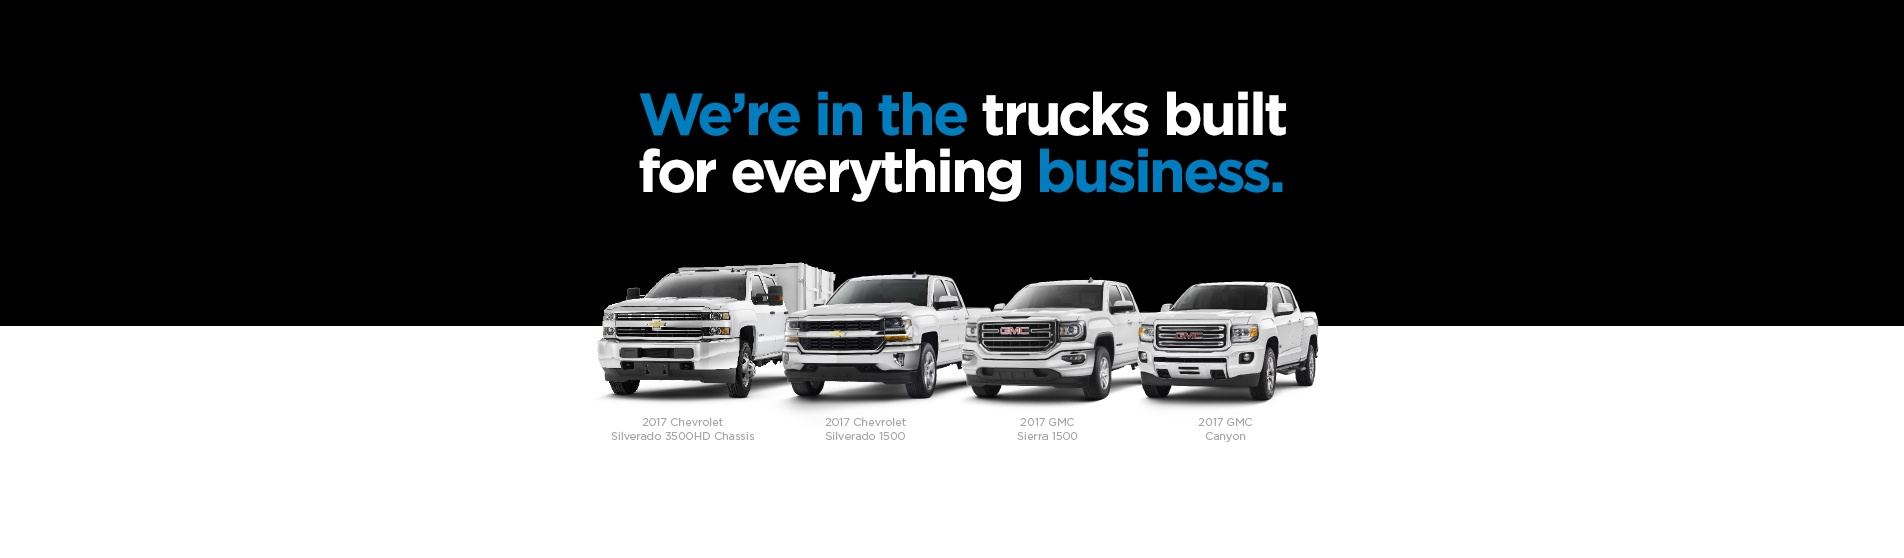 Fleet Trucks Milton